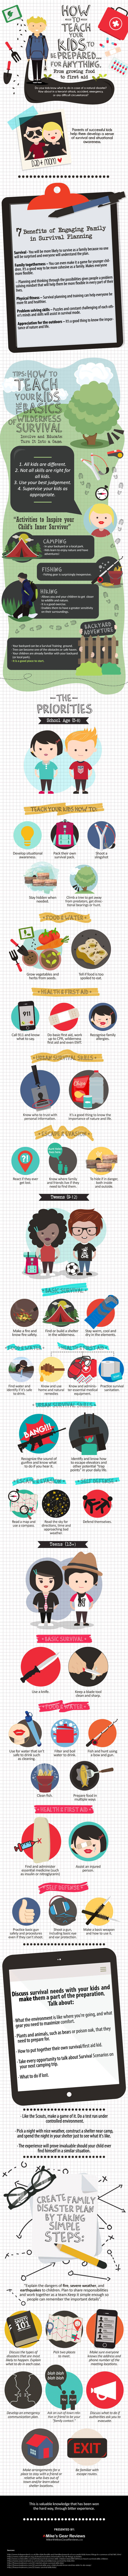 Engaging-Kids-to-Survival-Infographic